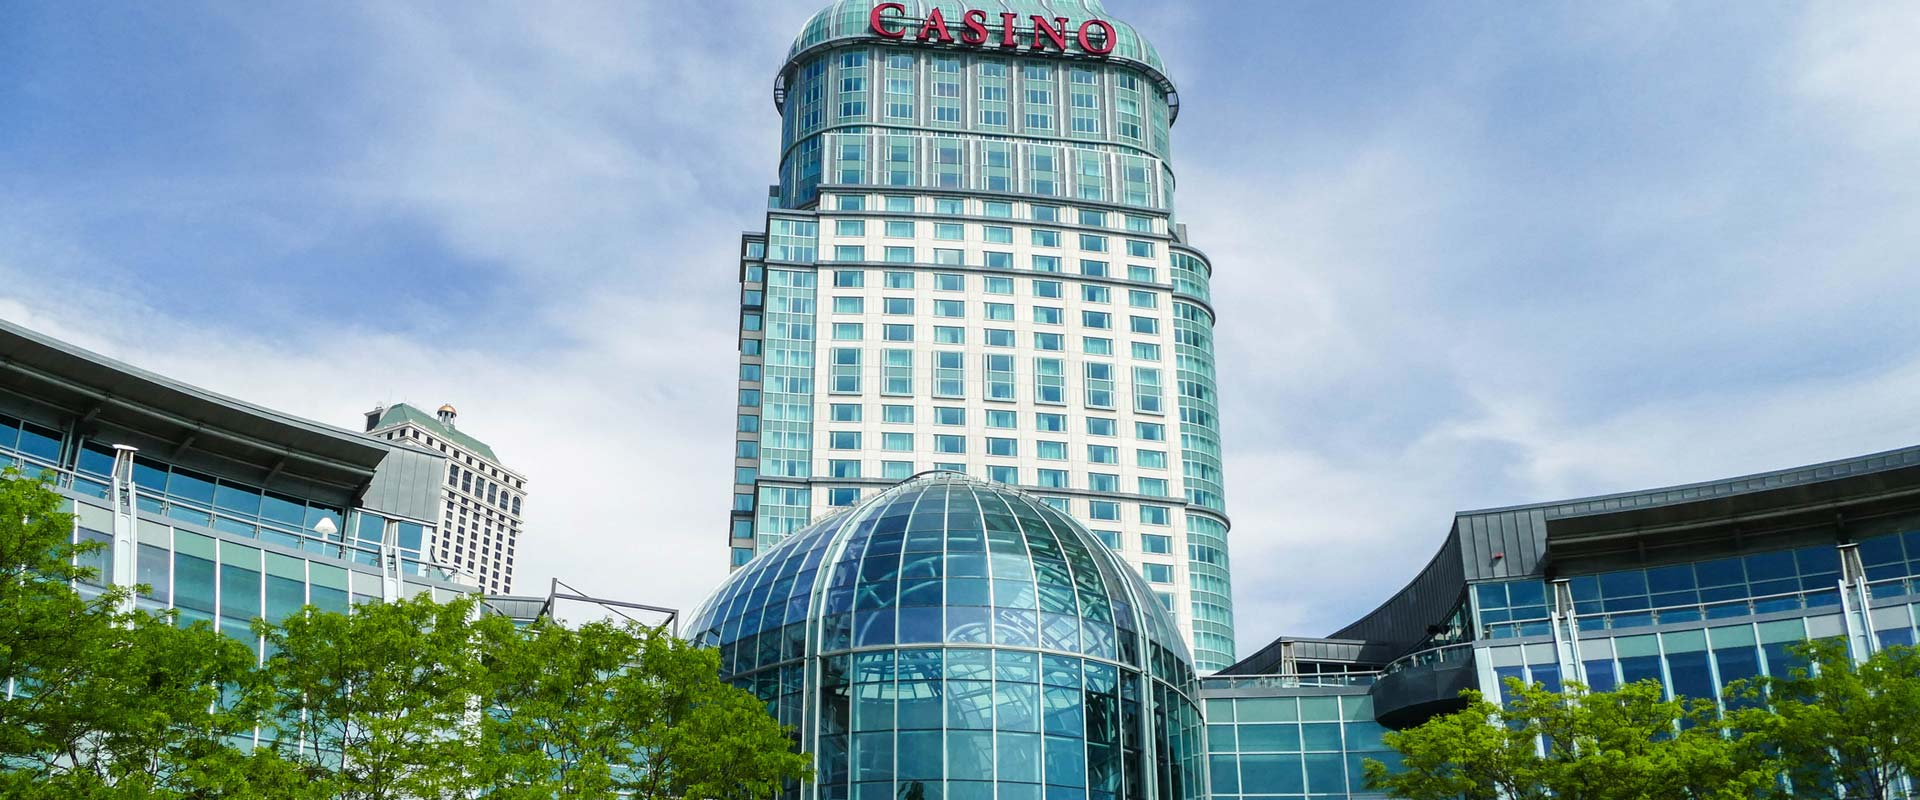 Try Your Luck at a Niagara Falls Casino